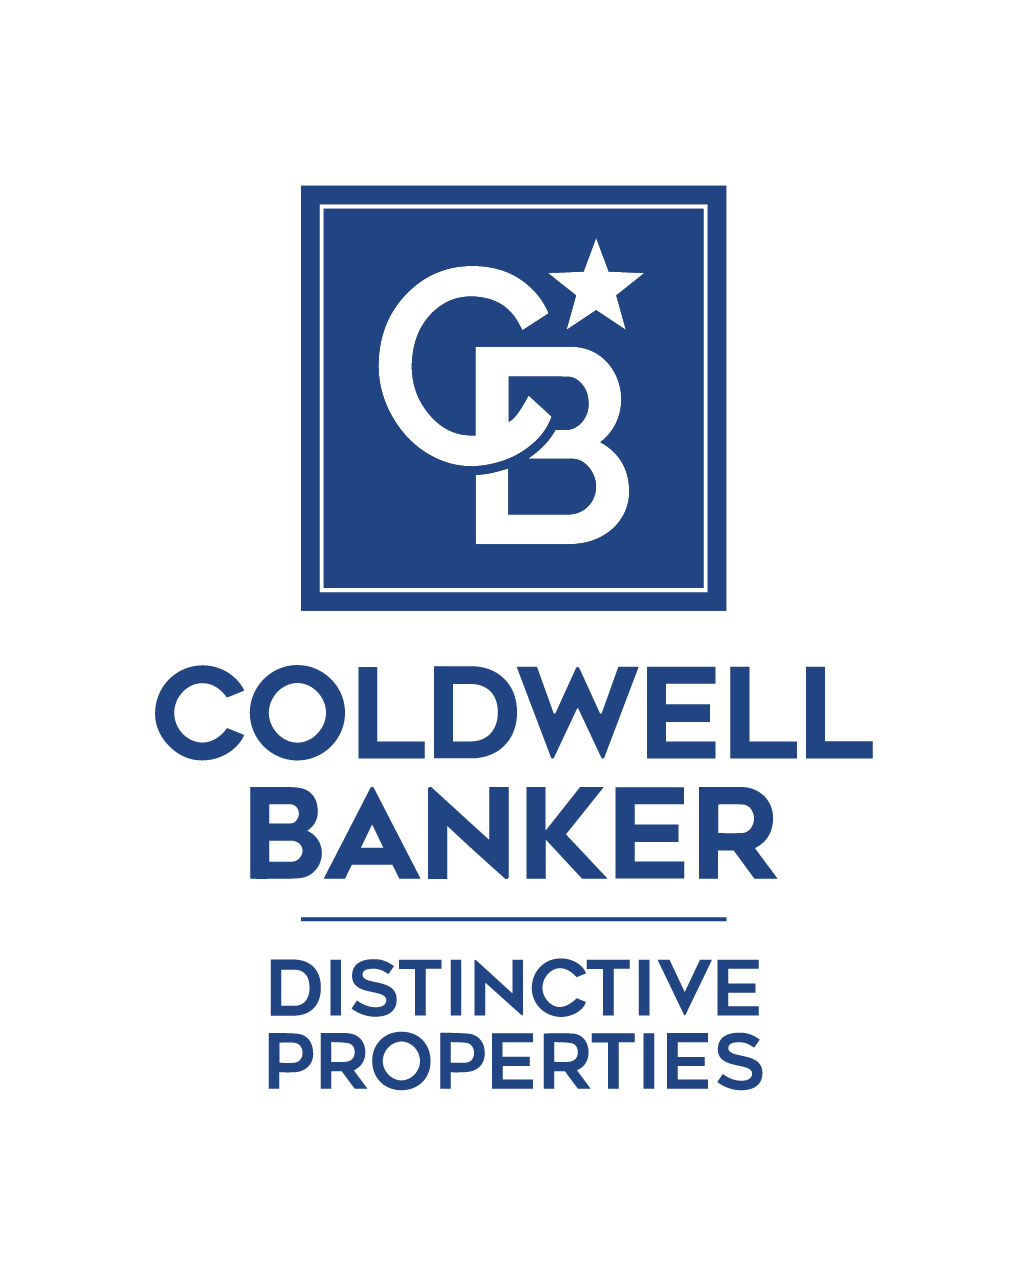 Taylor Knight - Coldwell Banker Distinctive Properties